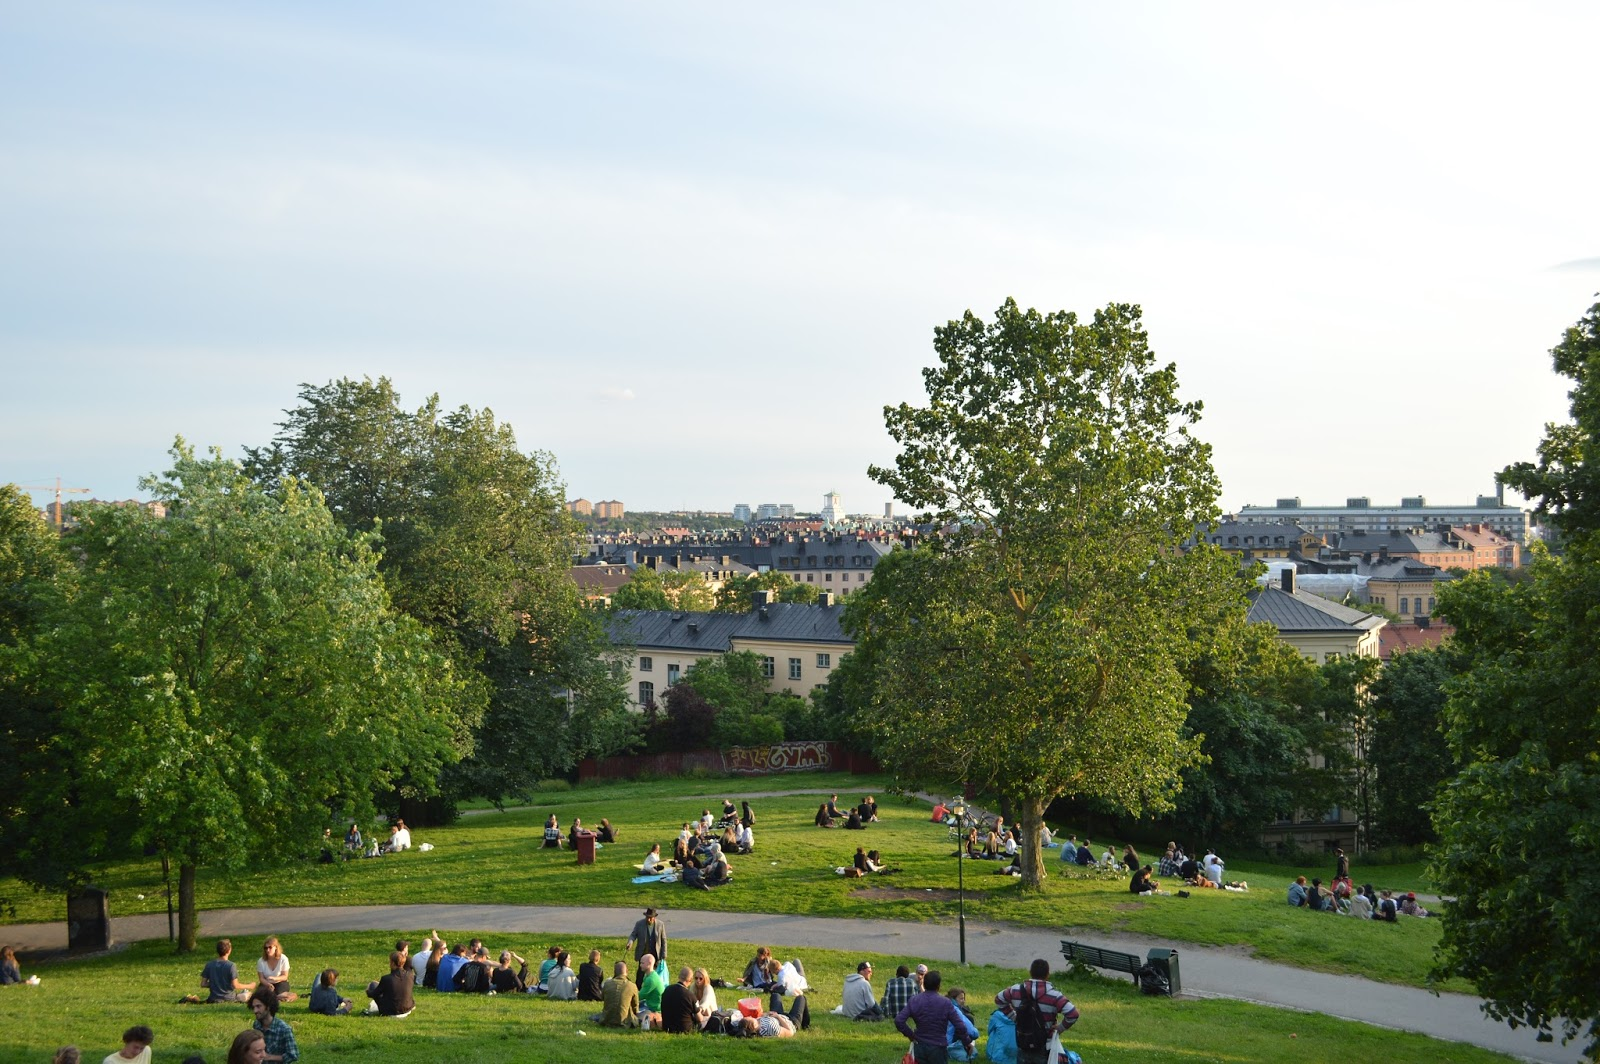 Where to hang out in Sodermalm, Vita Bergen park, Stockholm